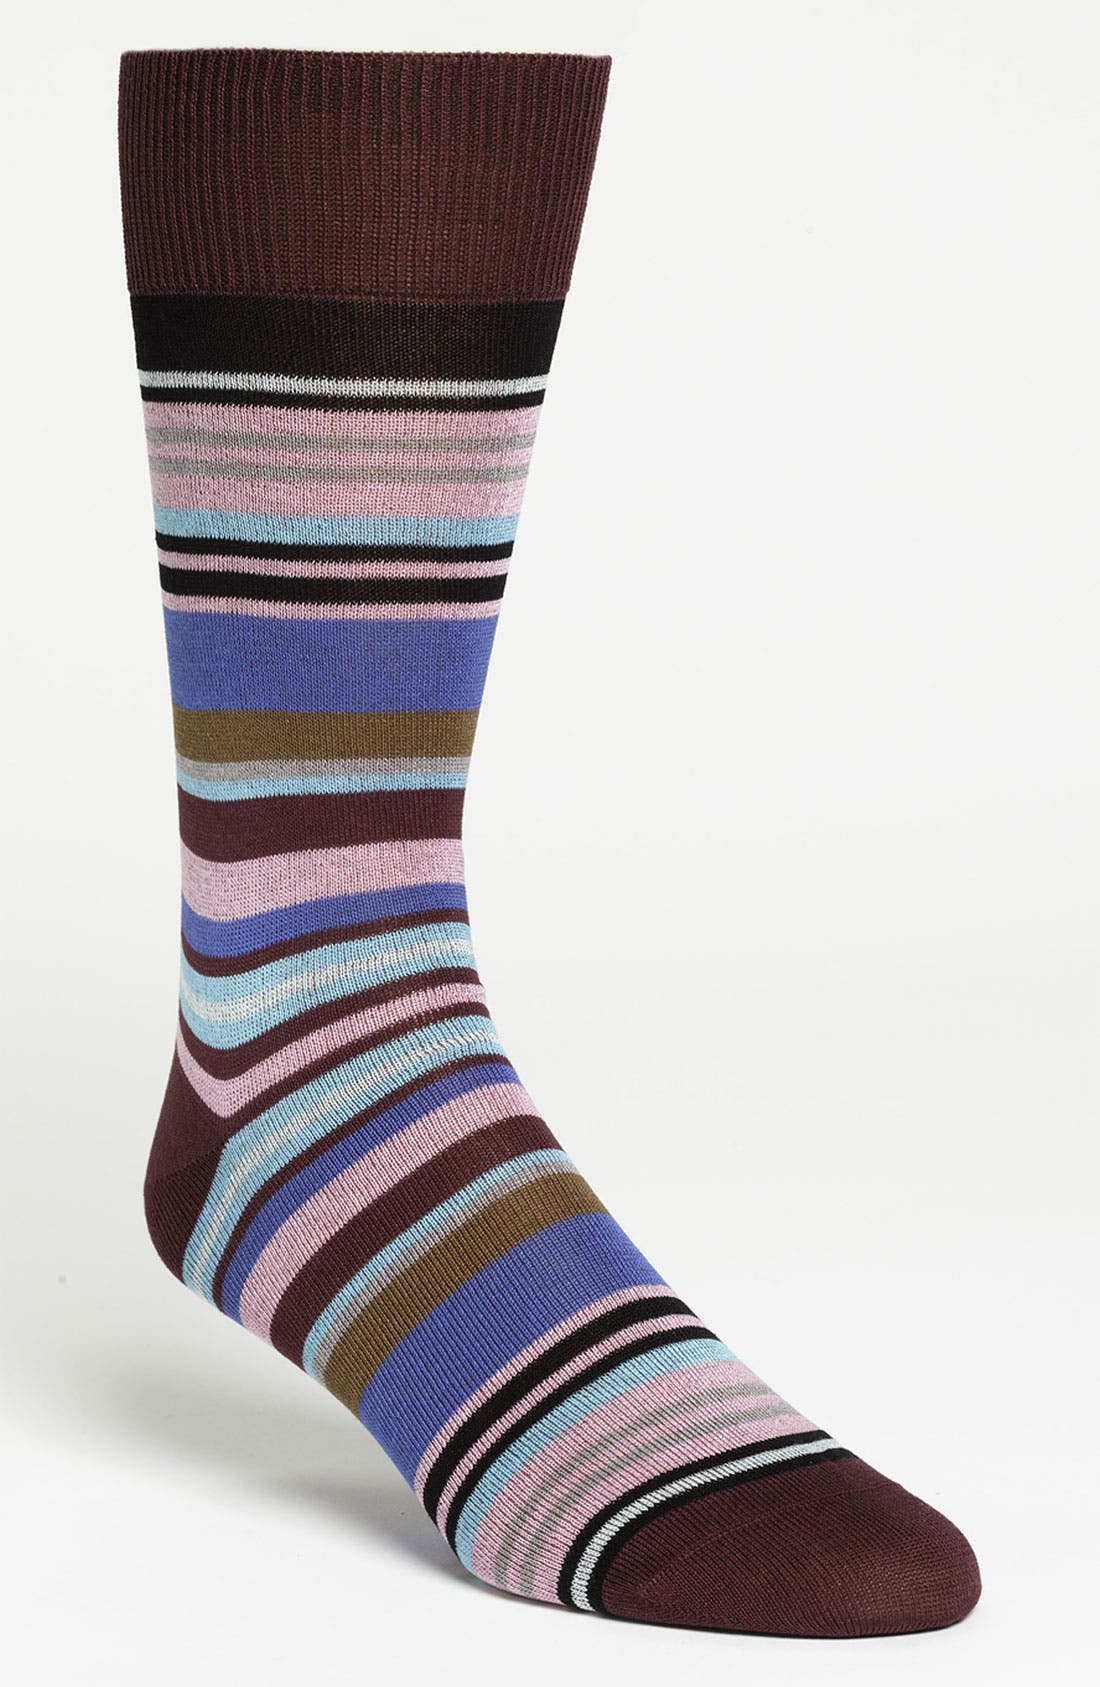 Alternate Image 1 Selected - Paul Smith Accessories Bright Stripe Socks